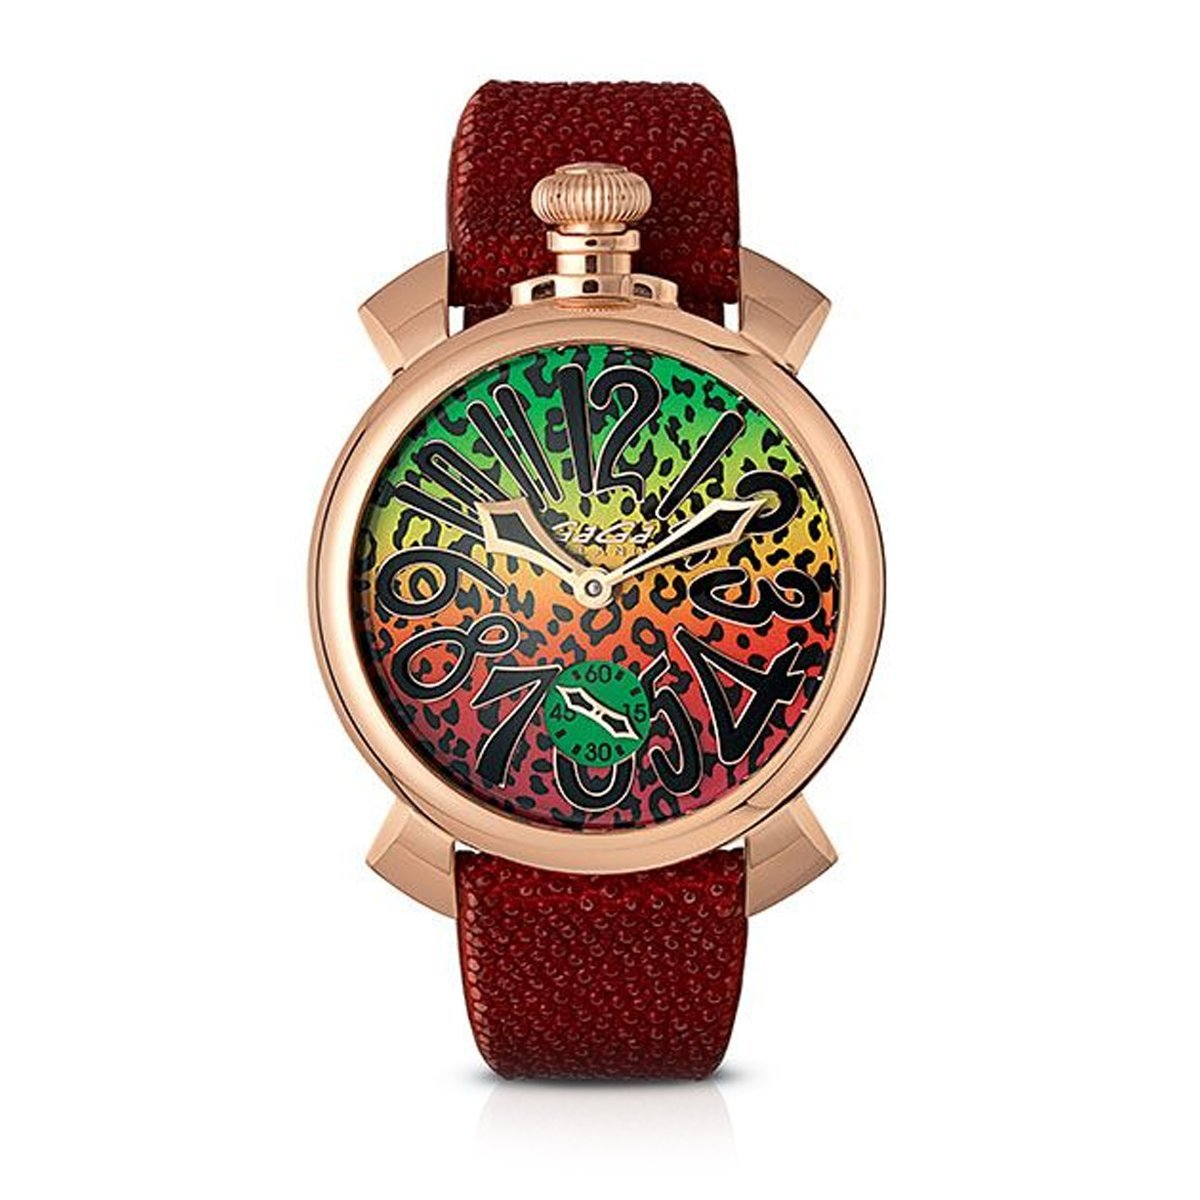 GaGà Milano Manuale 48MM Art Red - Watches & Crystals